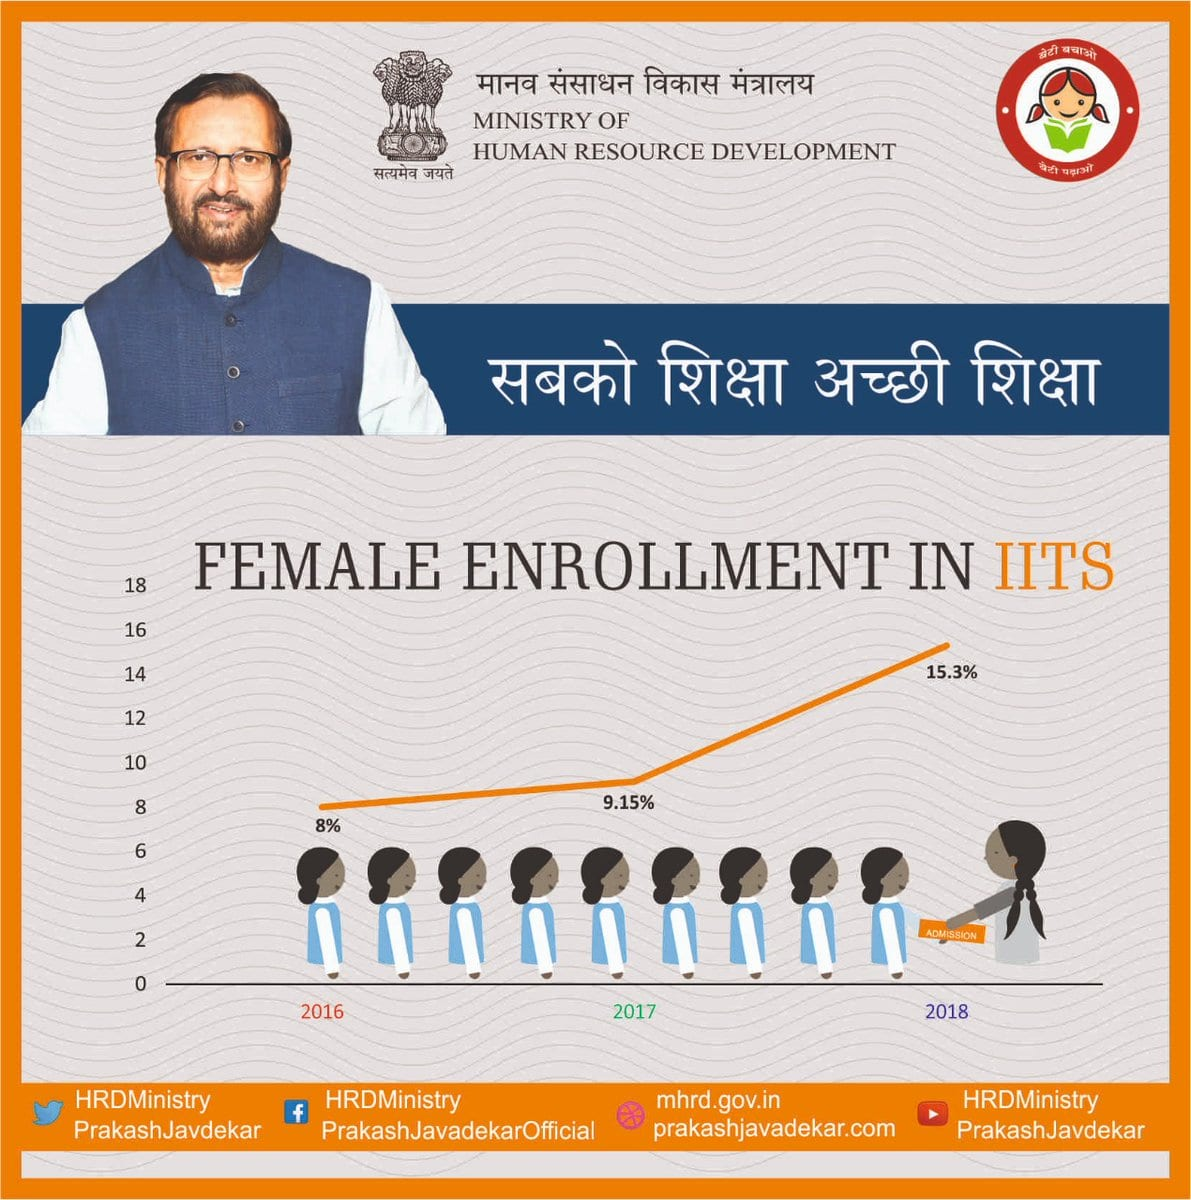 Government targets to increase number of female seats from 8% to 20% by 2020 in IITs